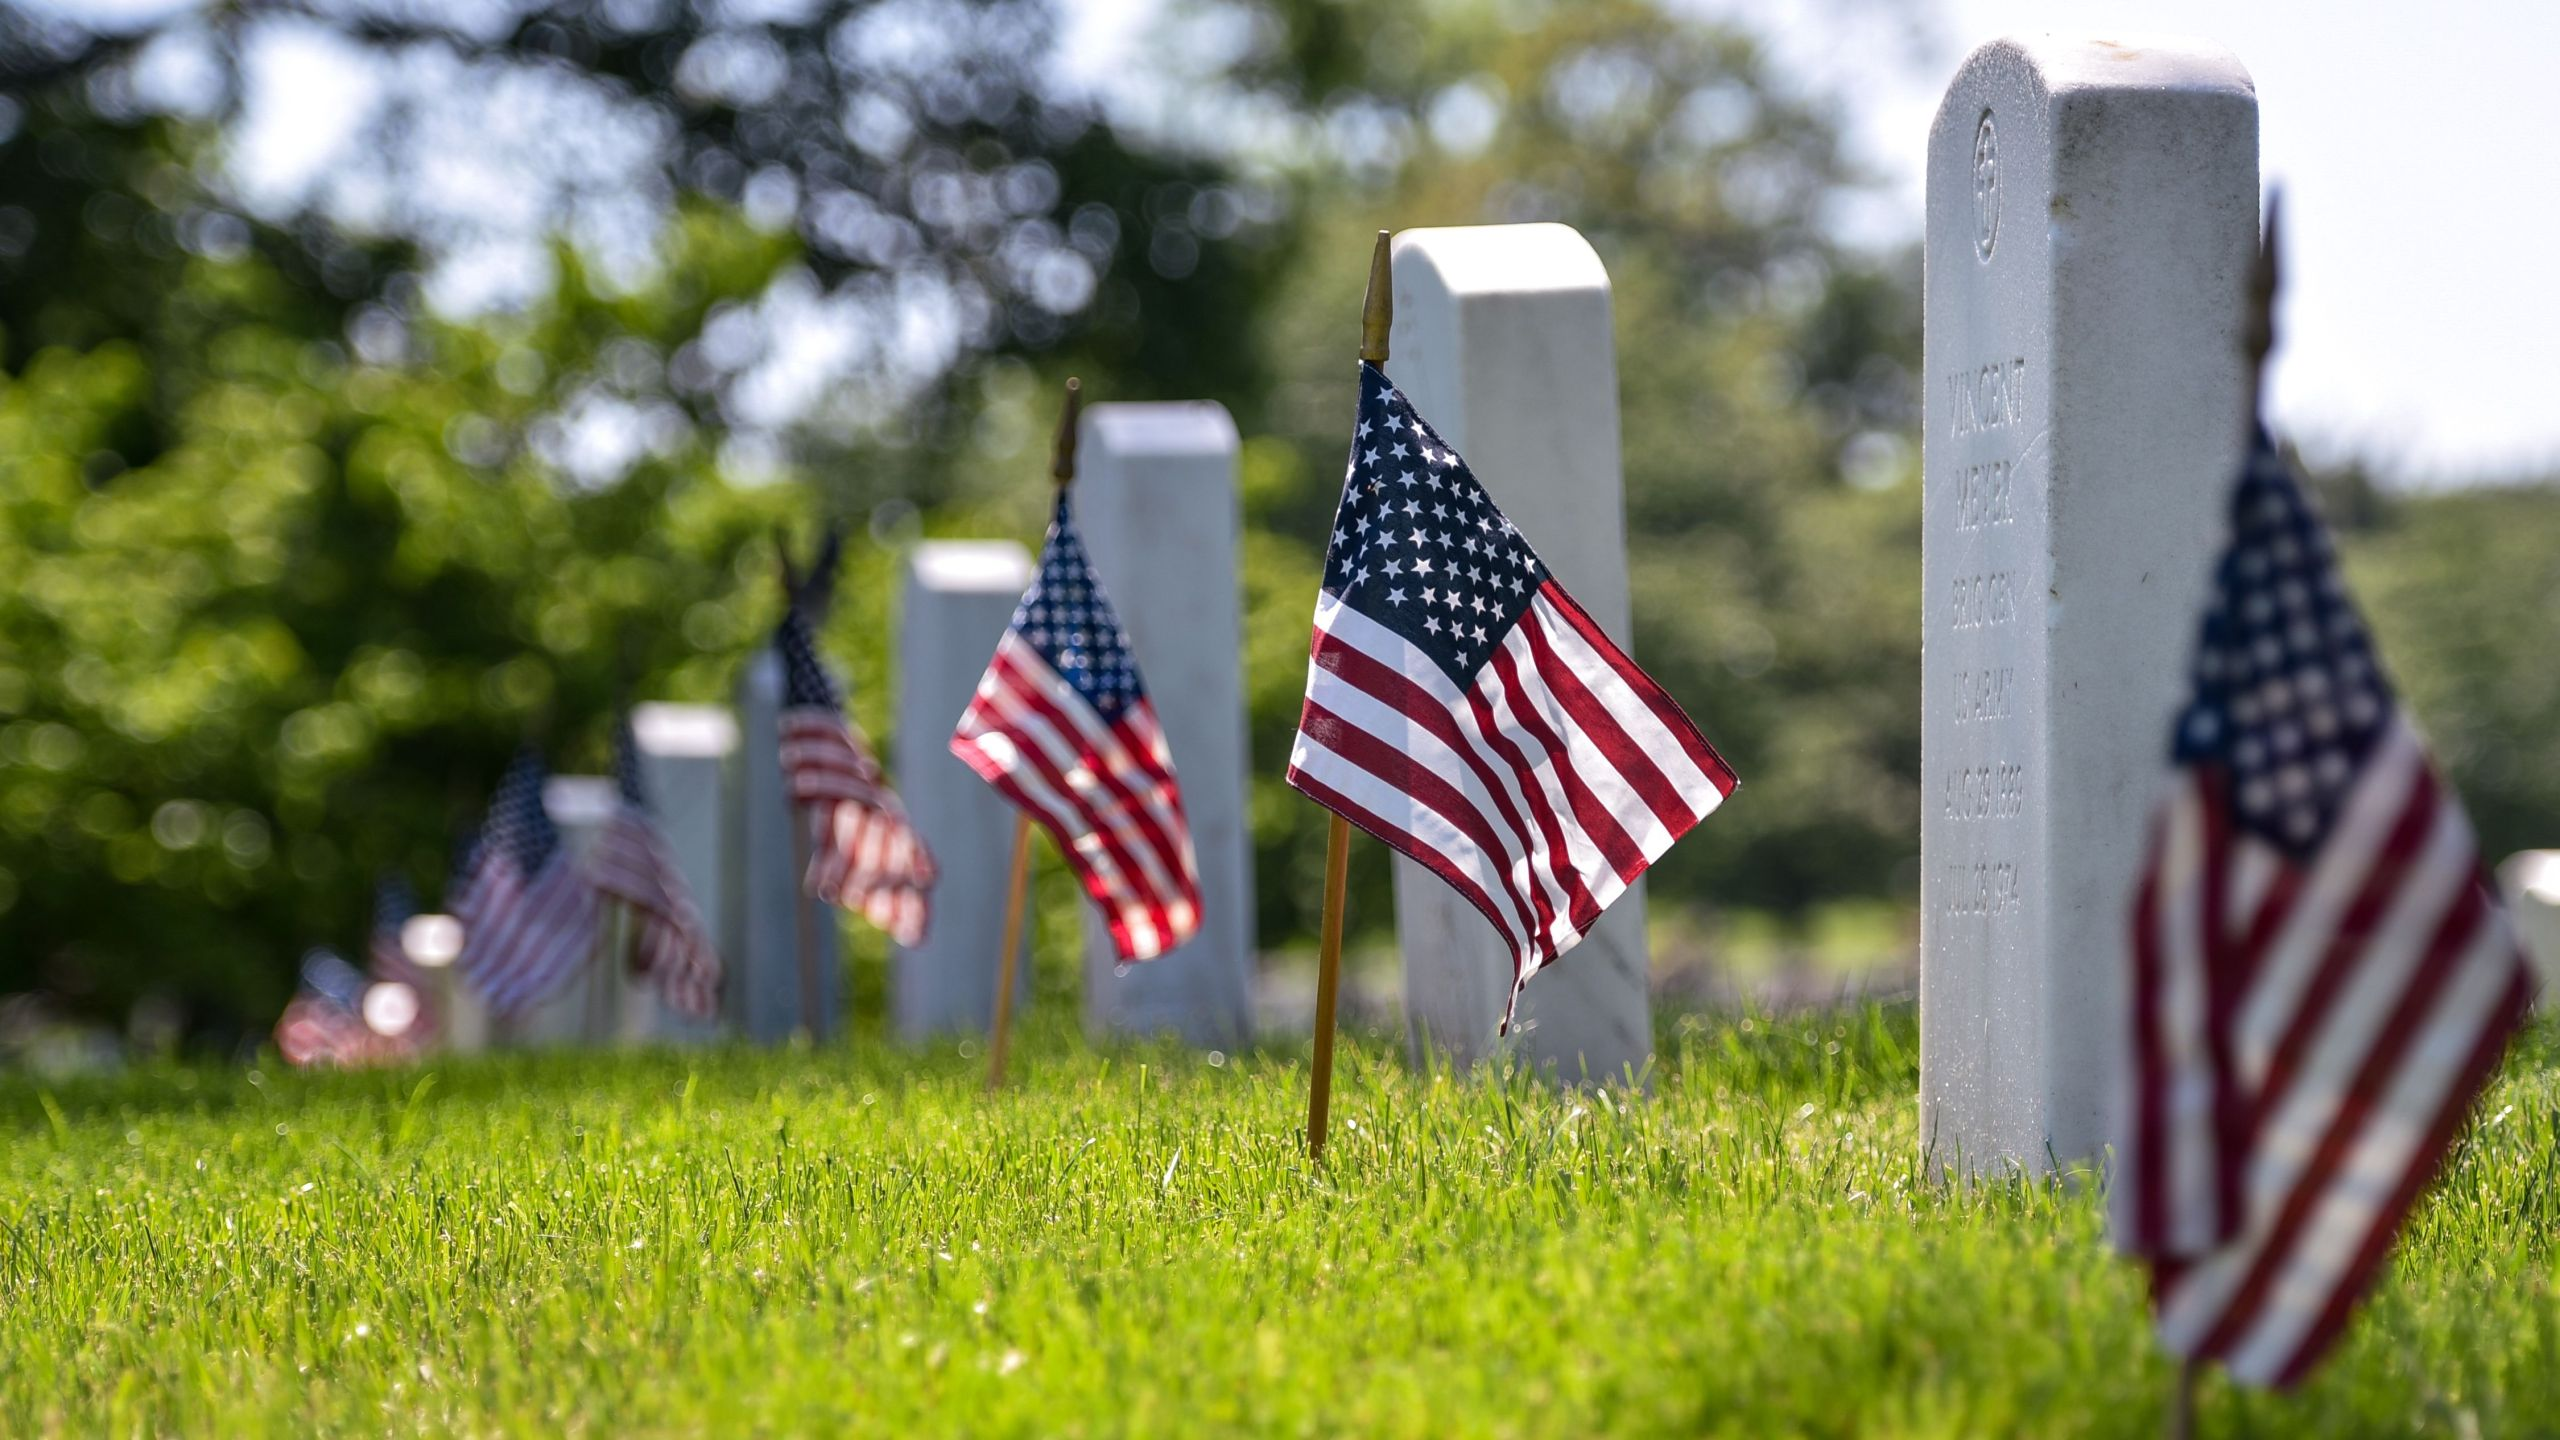 US flags are placed at graves by members of the Old Guard are seen at Arlington National Cemetery on May 24, 2018 ahead of Memorial Day in Arlington, Virginia. (Photo by Mandel NGAN / AFP) (Photo credit should read MANDEL NGAN/AFP/Getty Images)